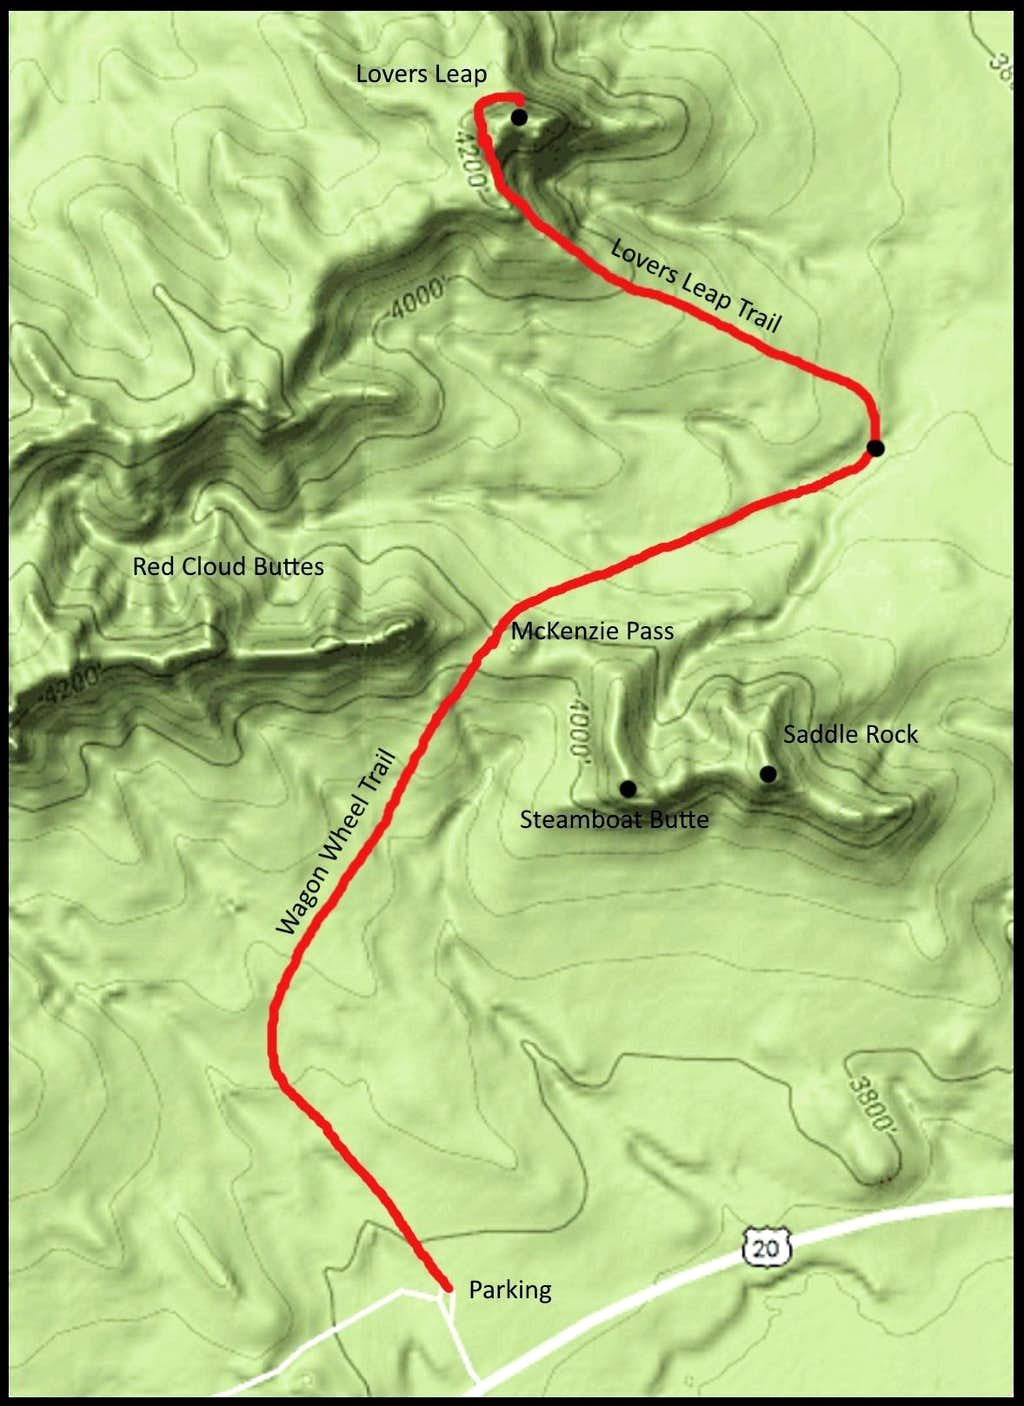 Lovers Leap Trail Map